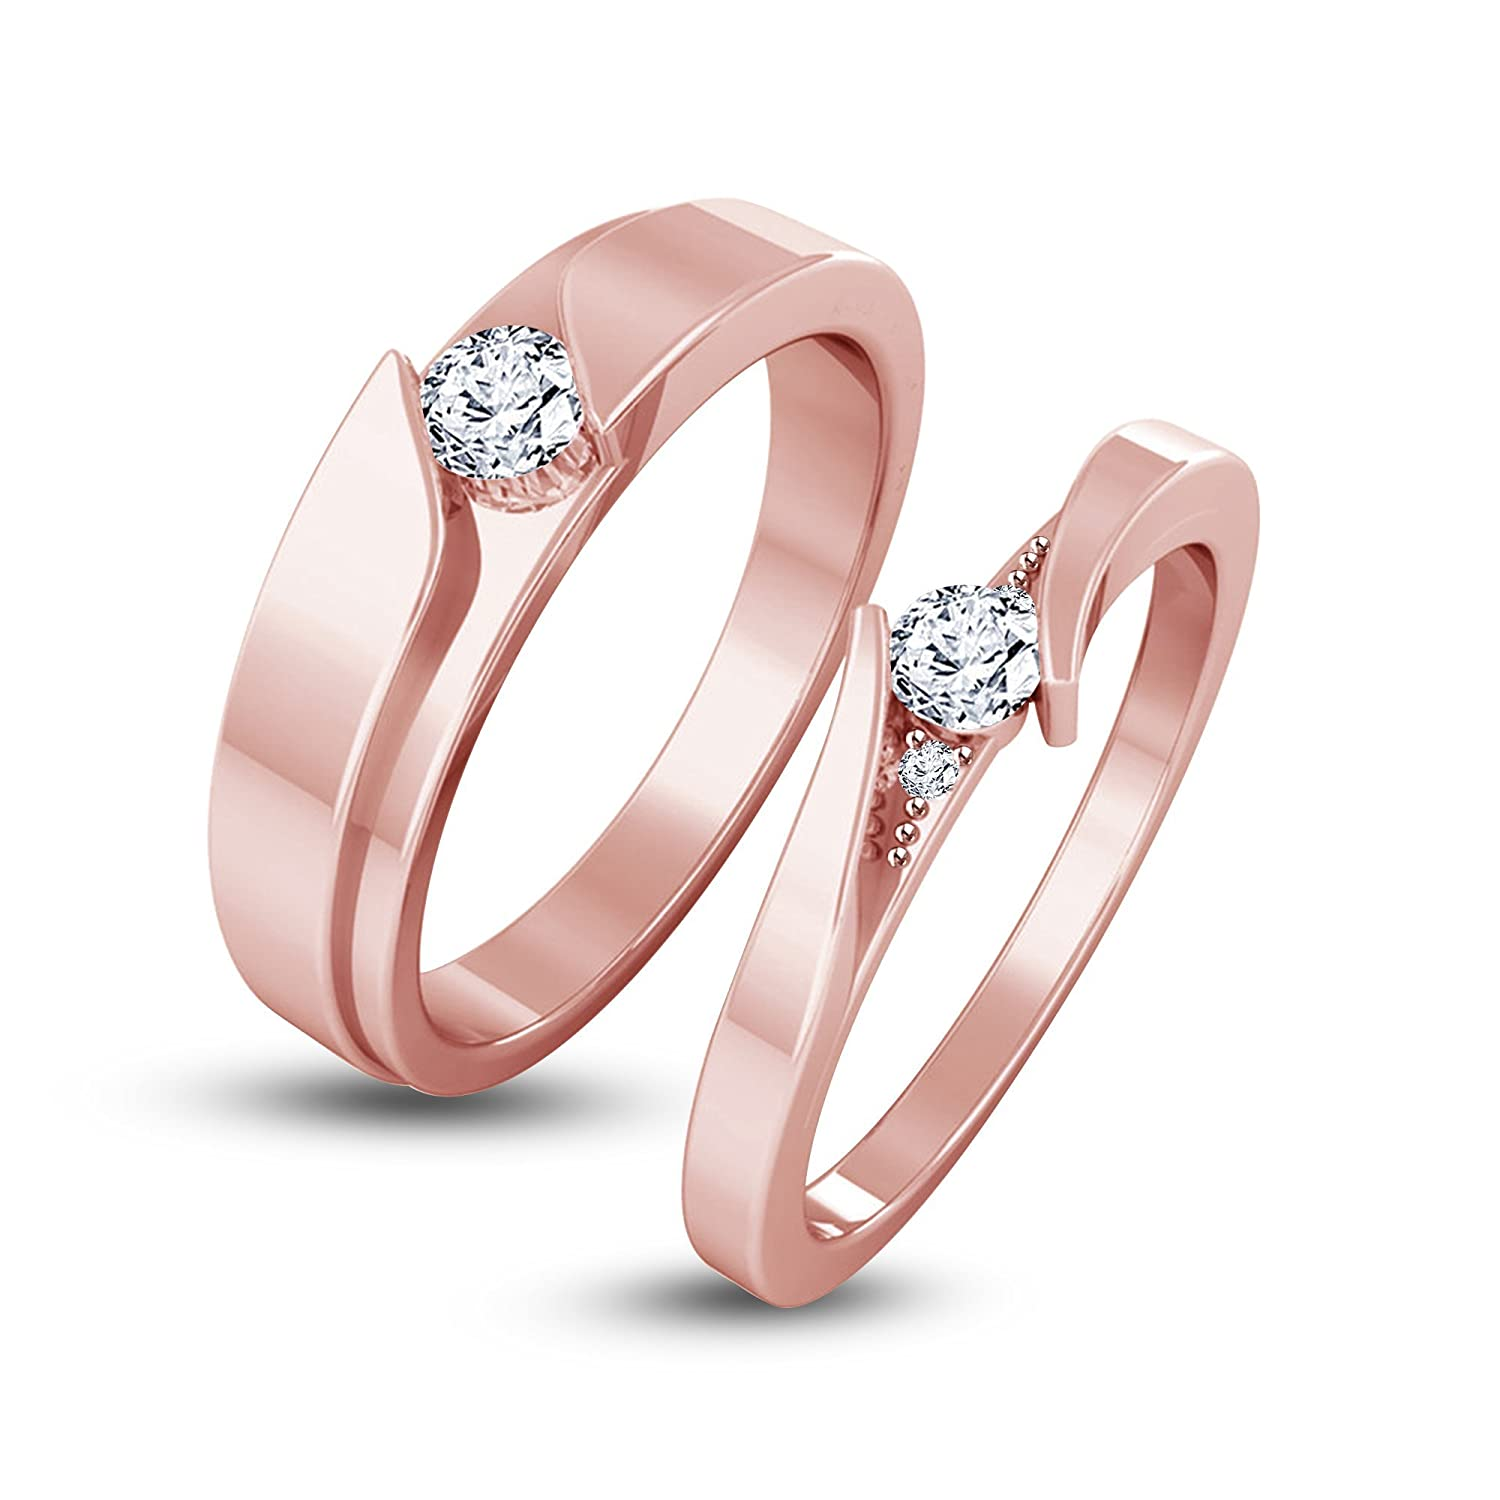 Buy atjewels Elegant Couple Ring in 14K Rose Gold Plated on 925 ...